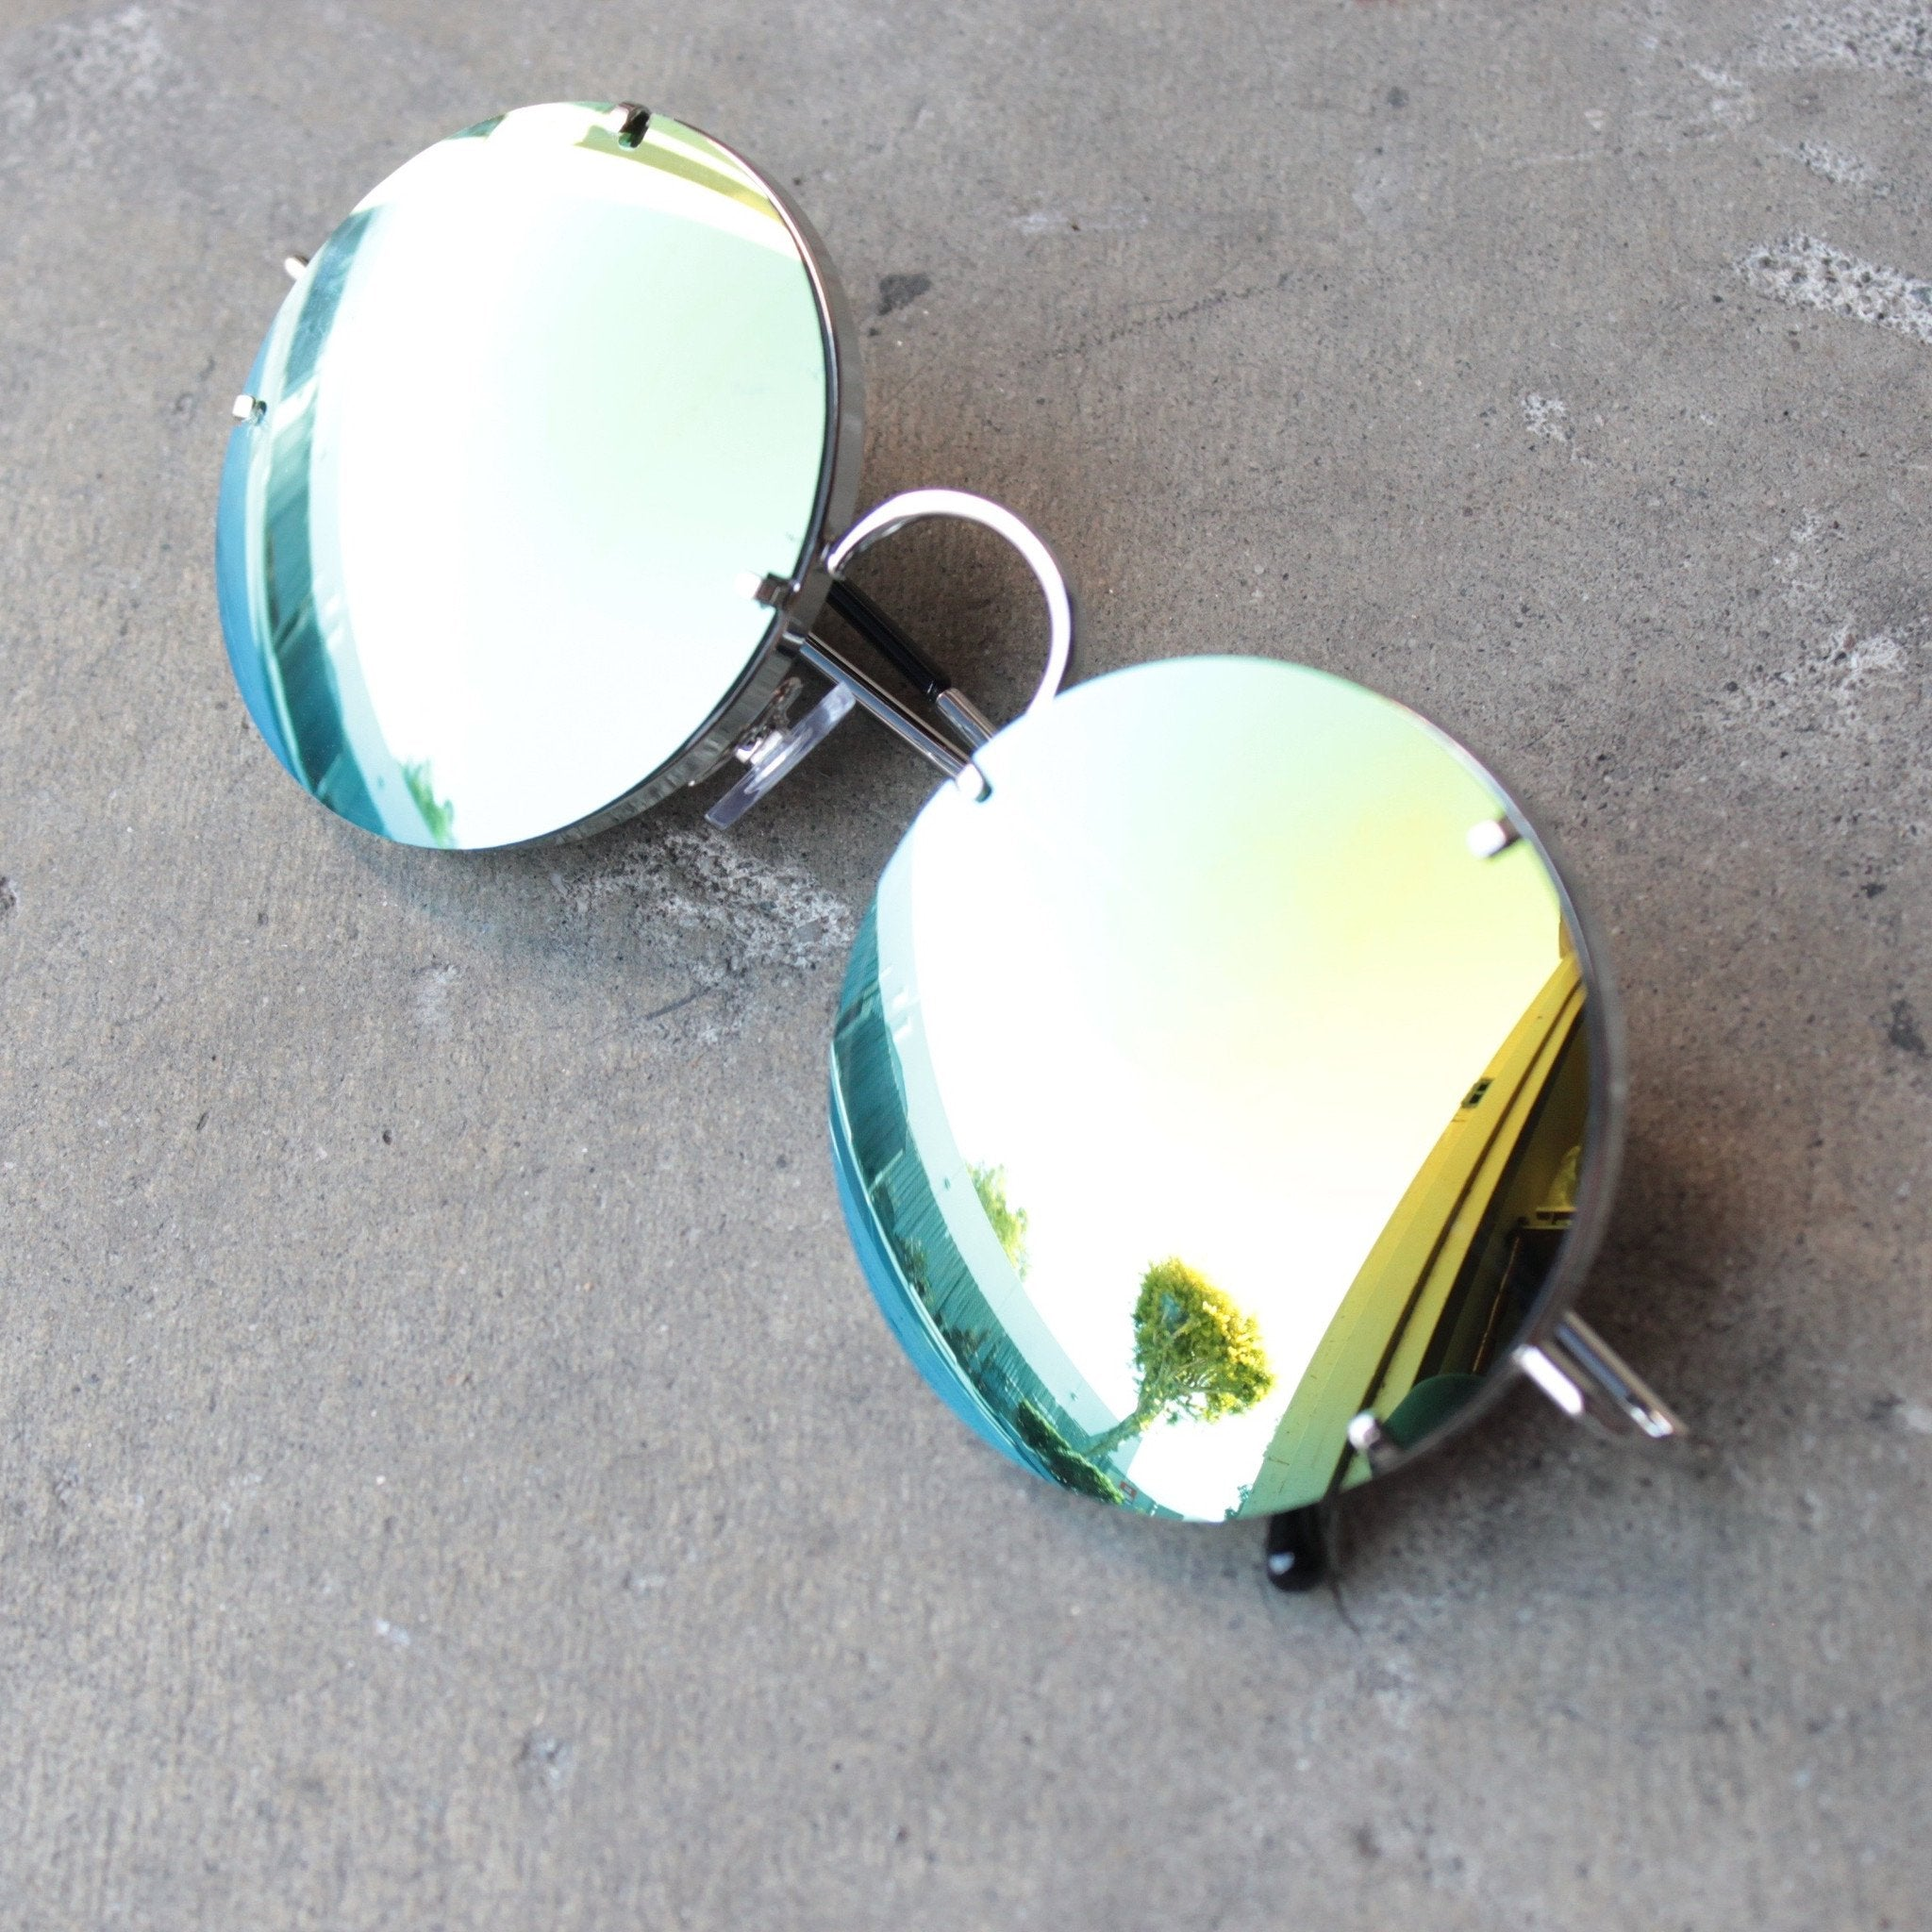 spitfire poolside in silver / gold mirror lens - shophearts - 1